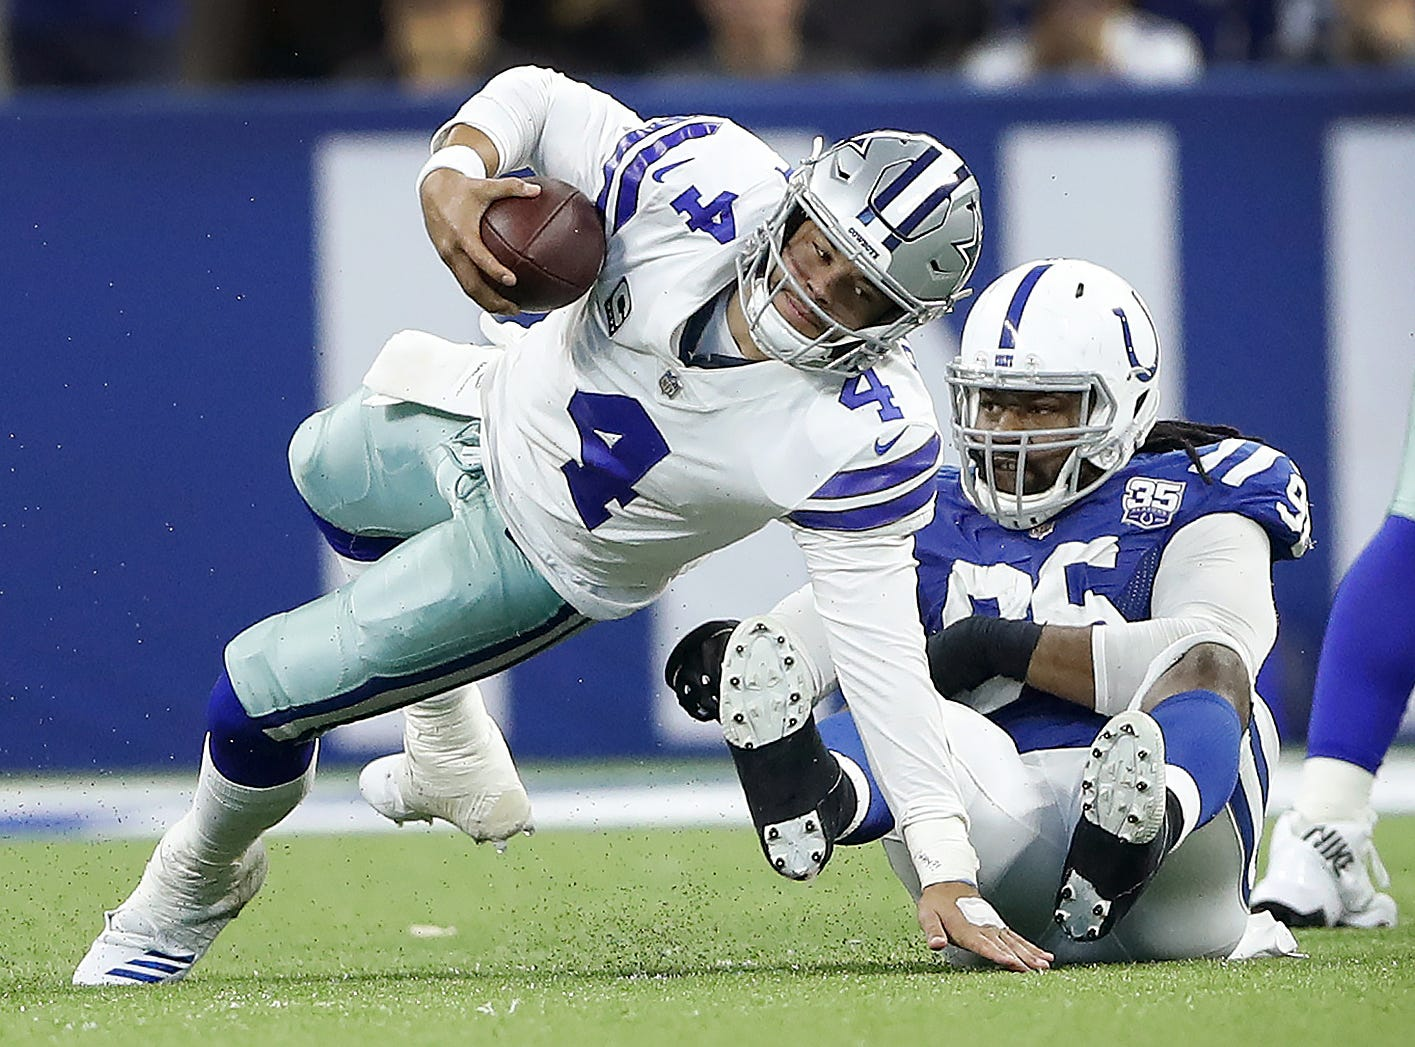 Indianapolis Colts defensive tackle Denico Autry (96) sacks Dallas Cowboys quarterback Dak Prescott (4) in the second half of their game at Lucas Oil Stadium on Sunday, Dec. 16, 2018. The Colts shut-out the Cowboys 23-0.